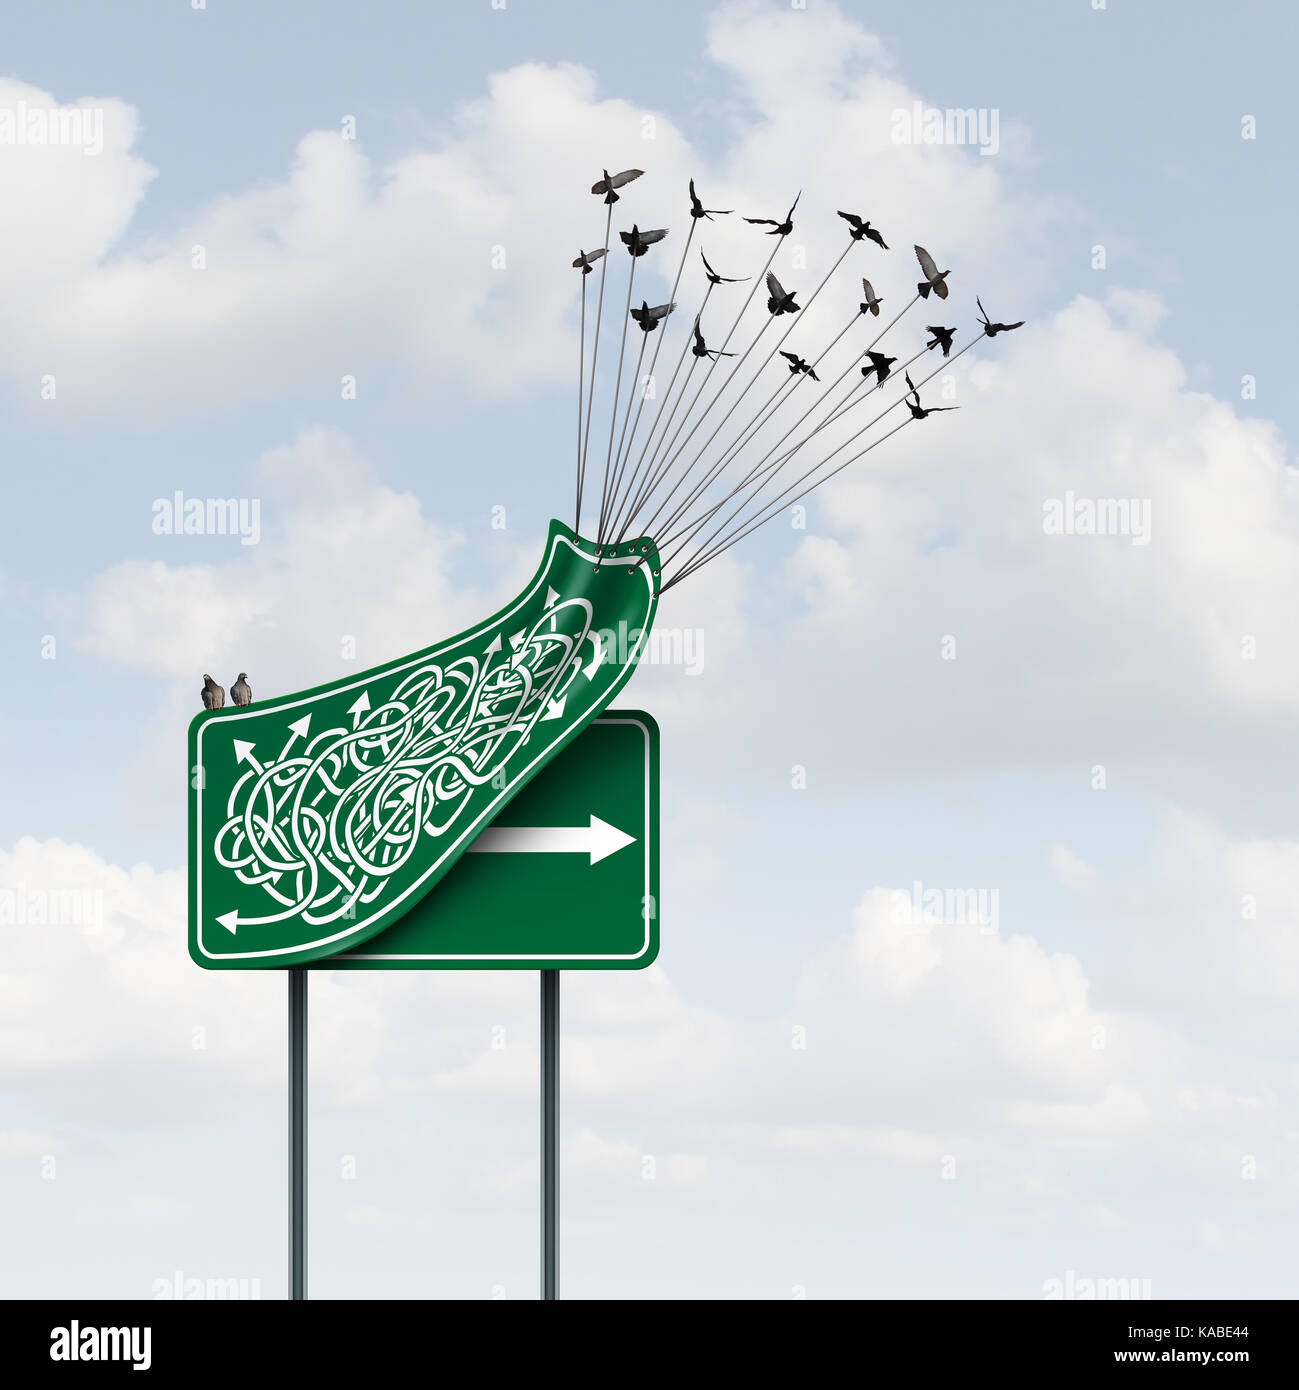 Business way concept as a group of birds lifting up a confused direction sign revealing a clear straight arrow as - Stock Image